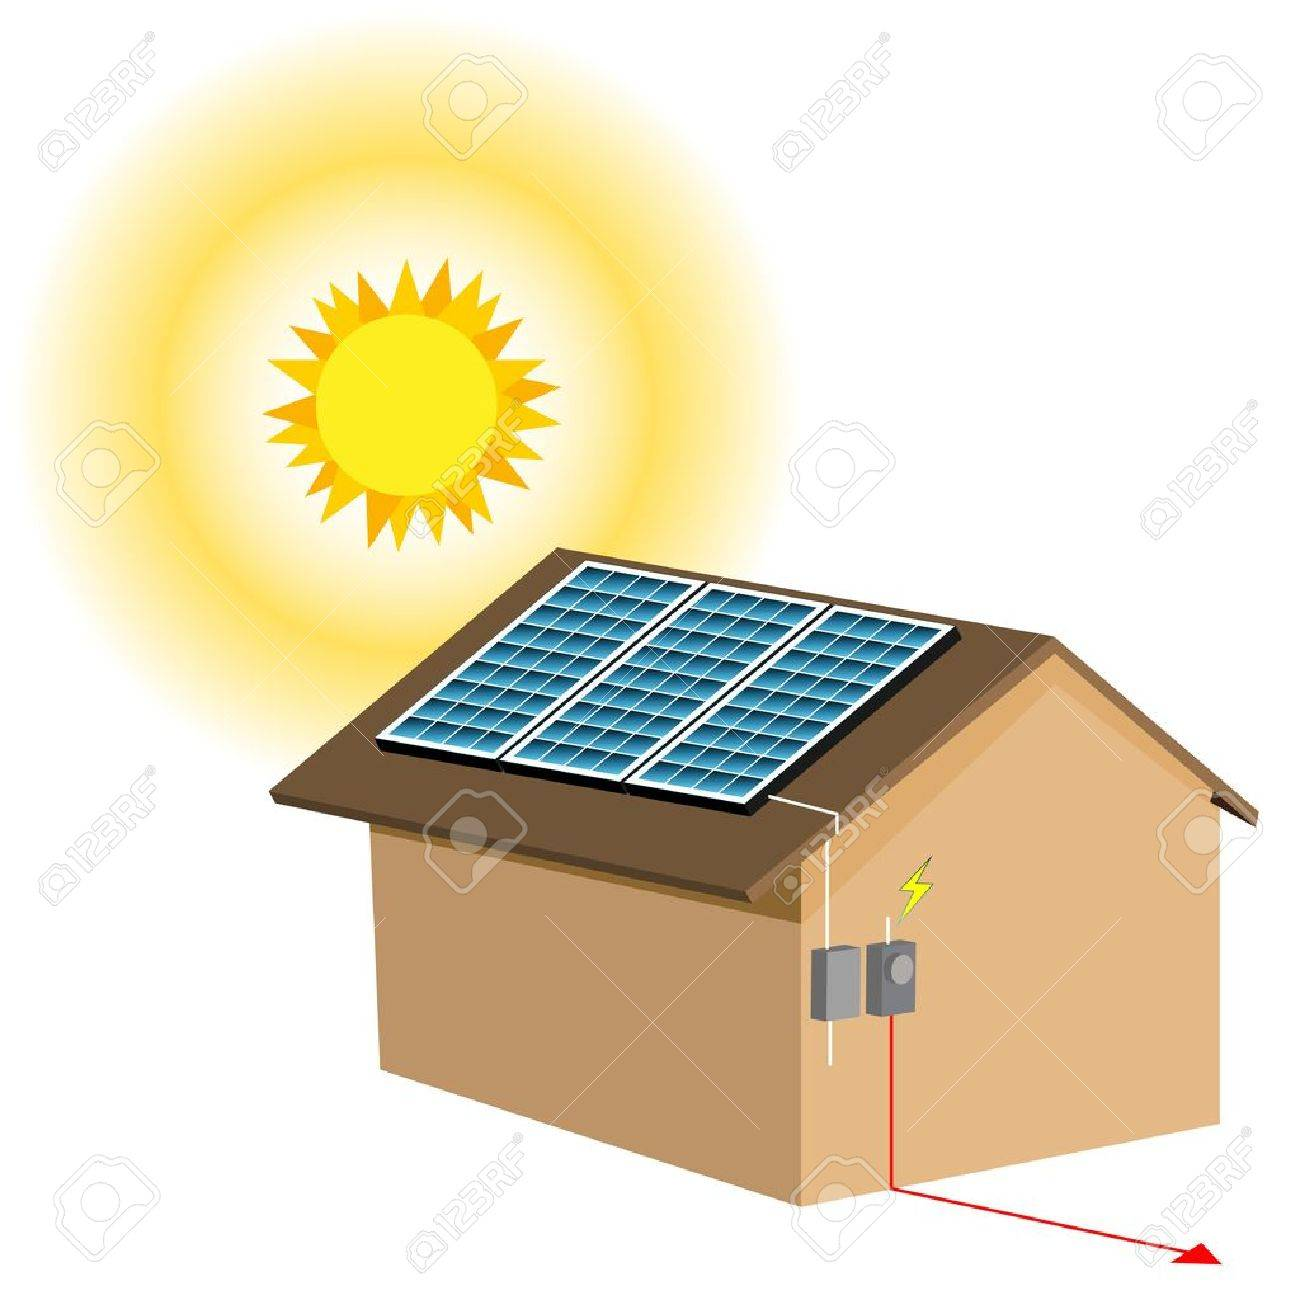 Solar panels clipart 2 » Clipart Station.